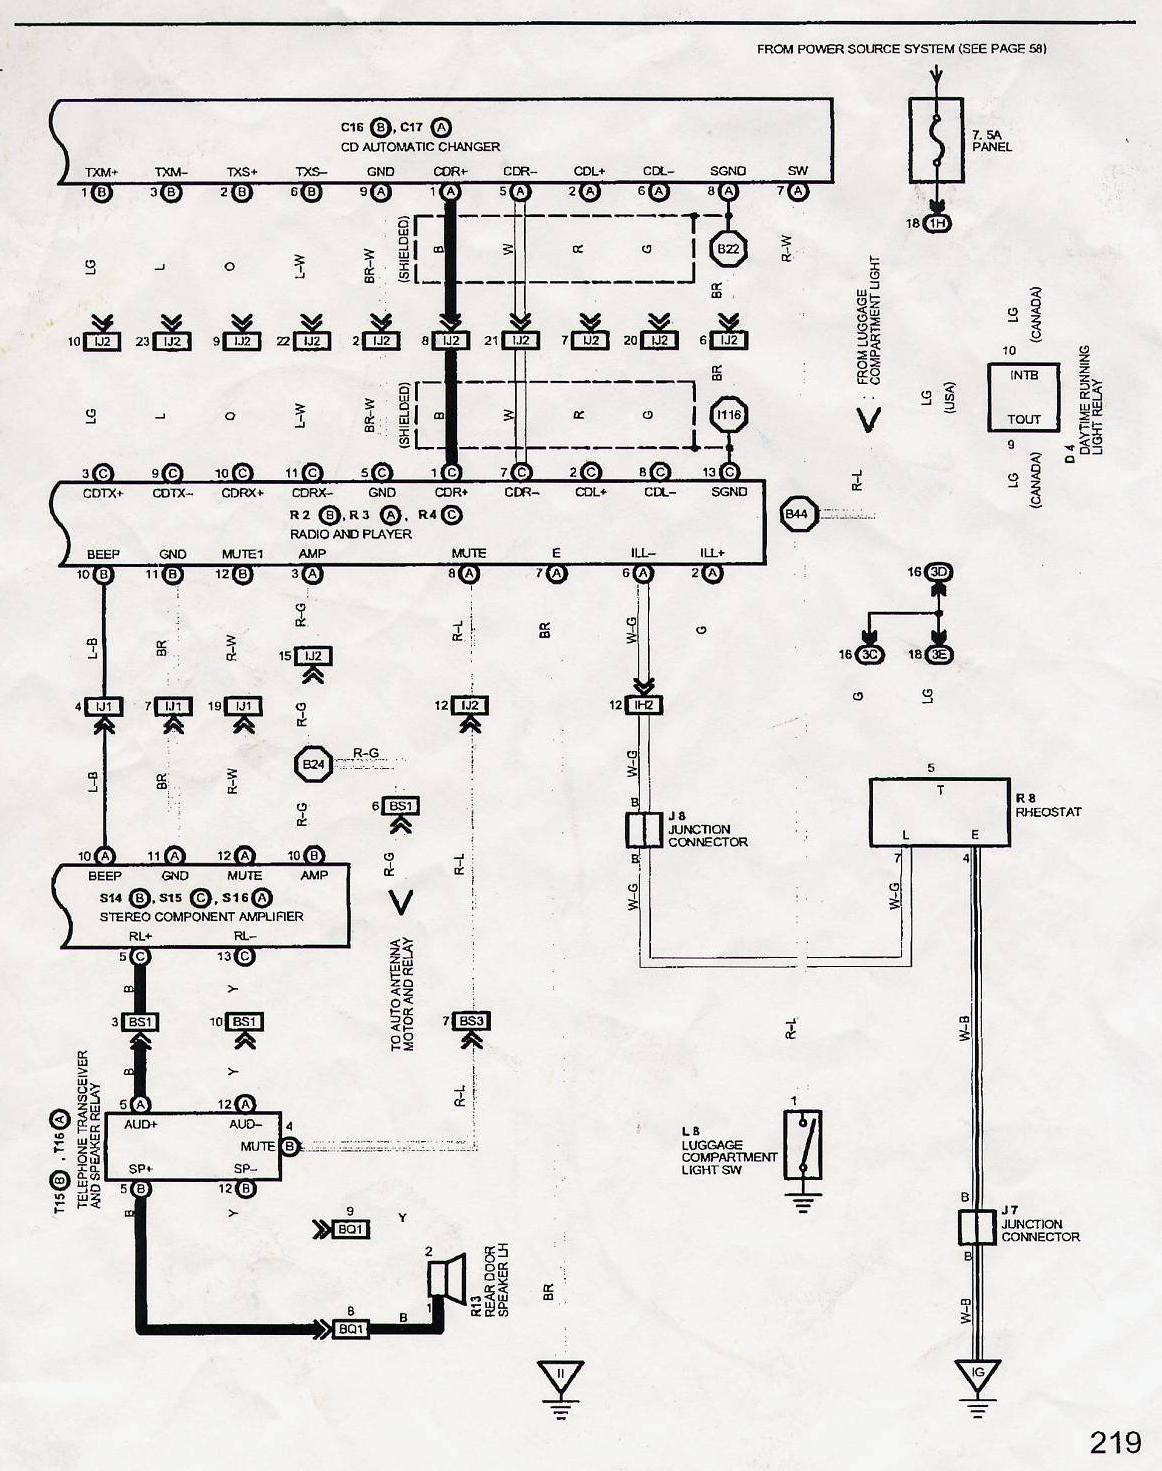 Mercedes Benz 280se Besides Ford Heater Hose Diagram Besides Ford F